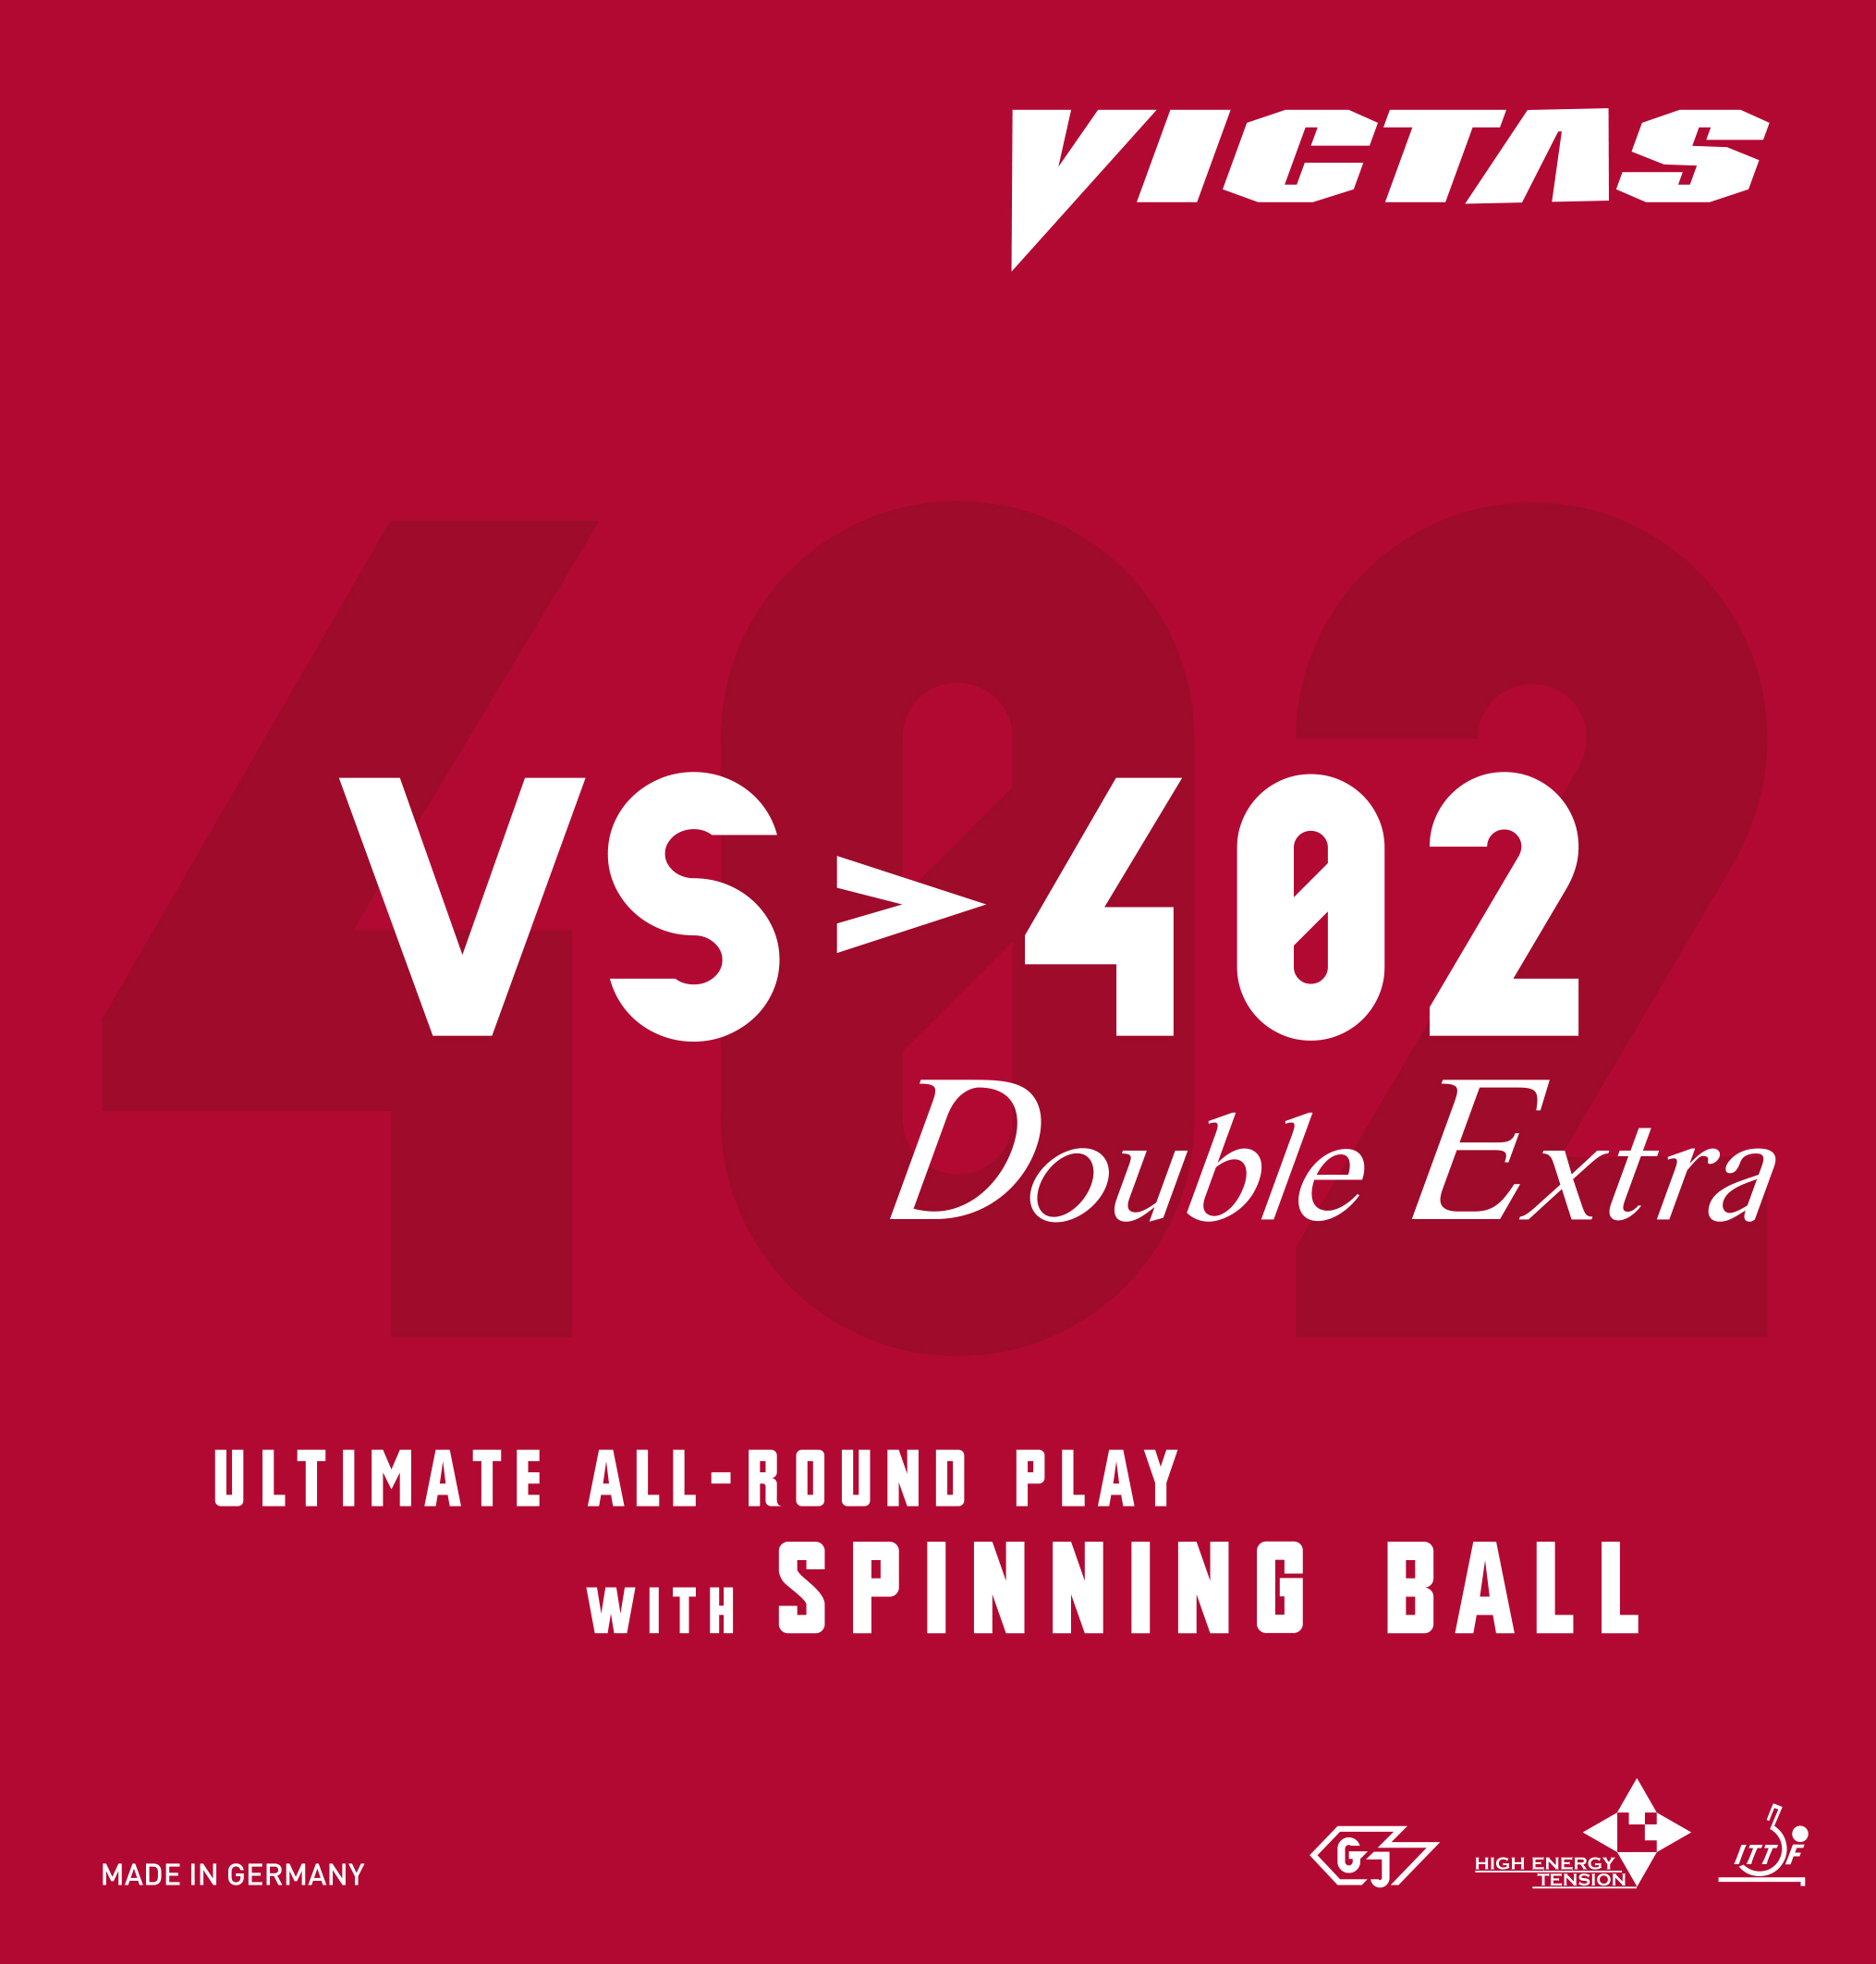 Victas Vs Gt 402 Double Extra And Vs Gt 402 Limber